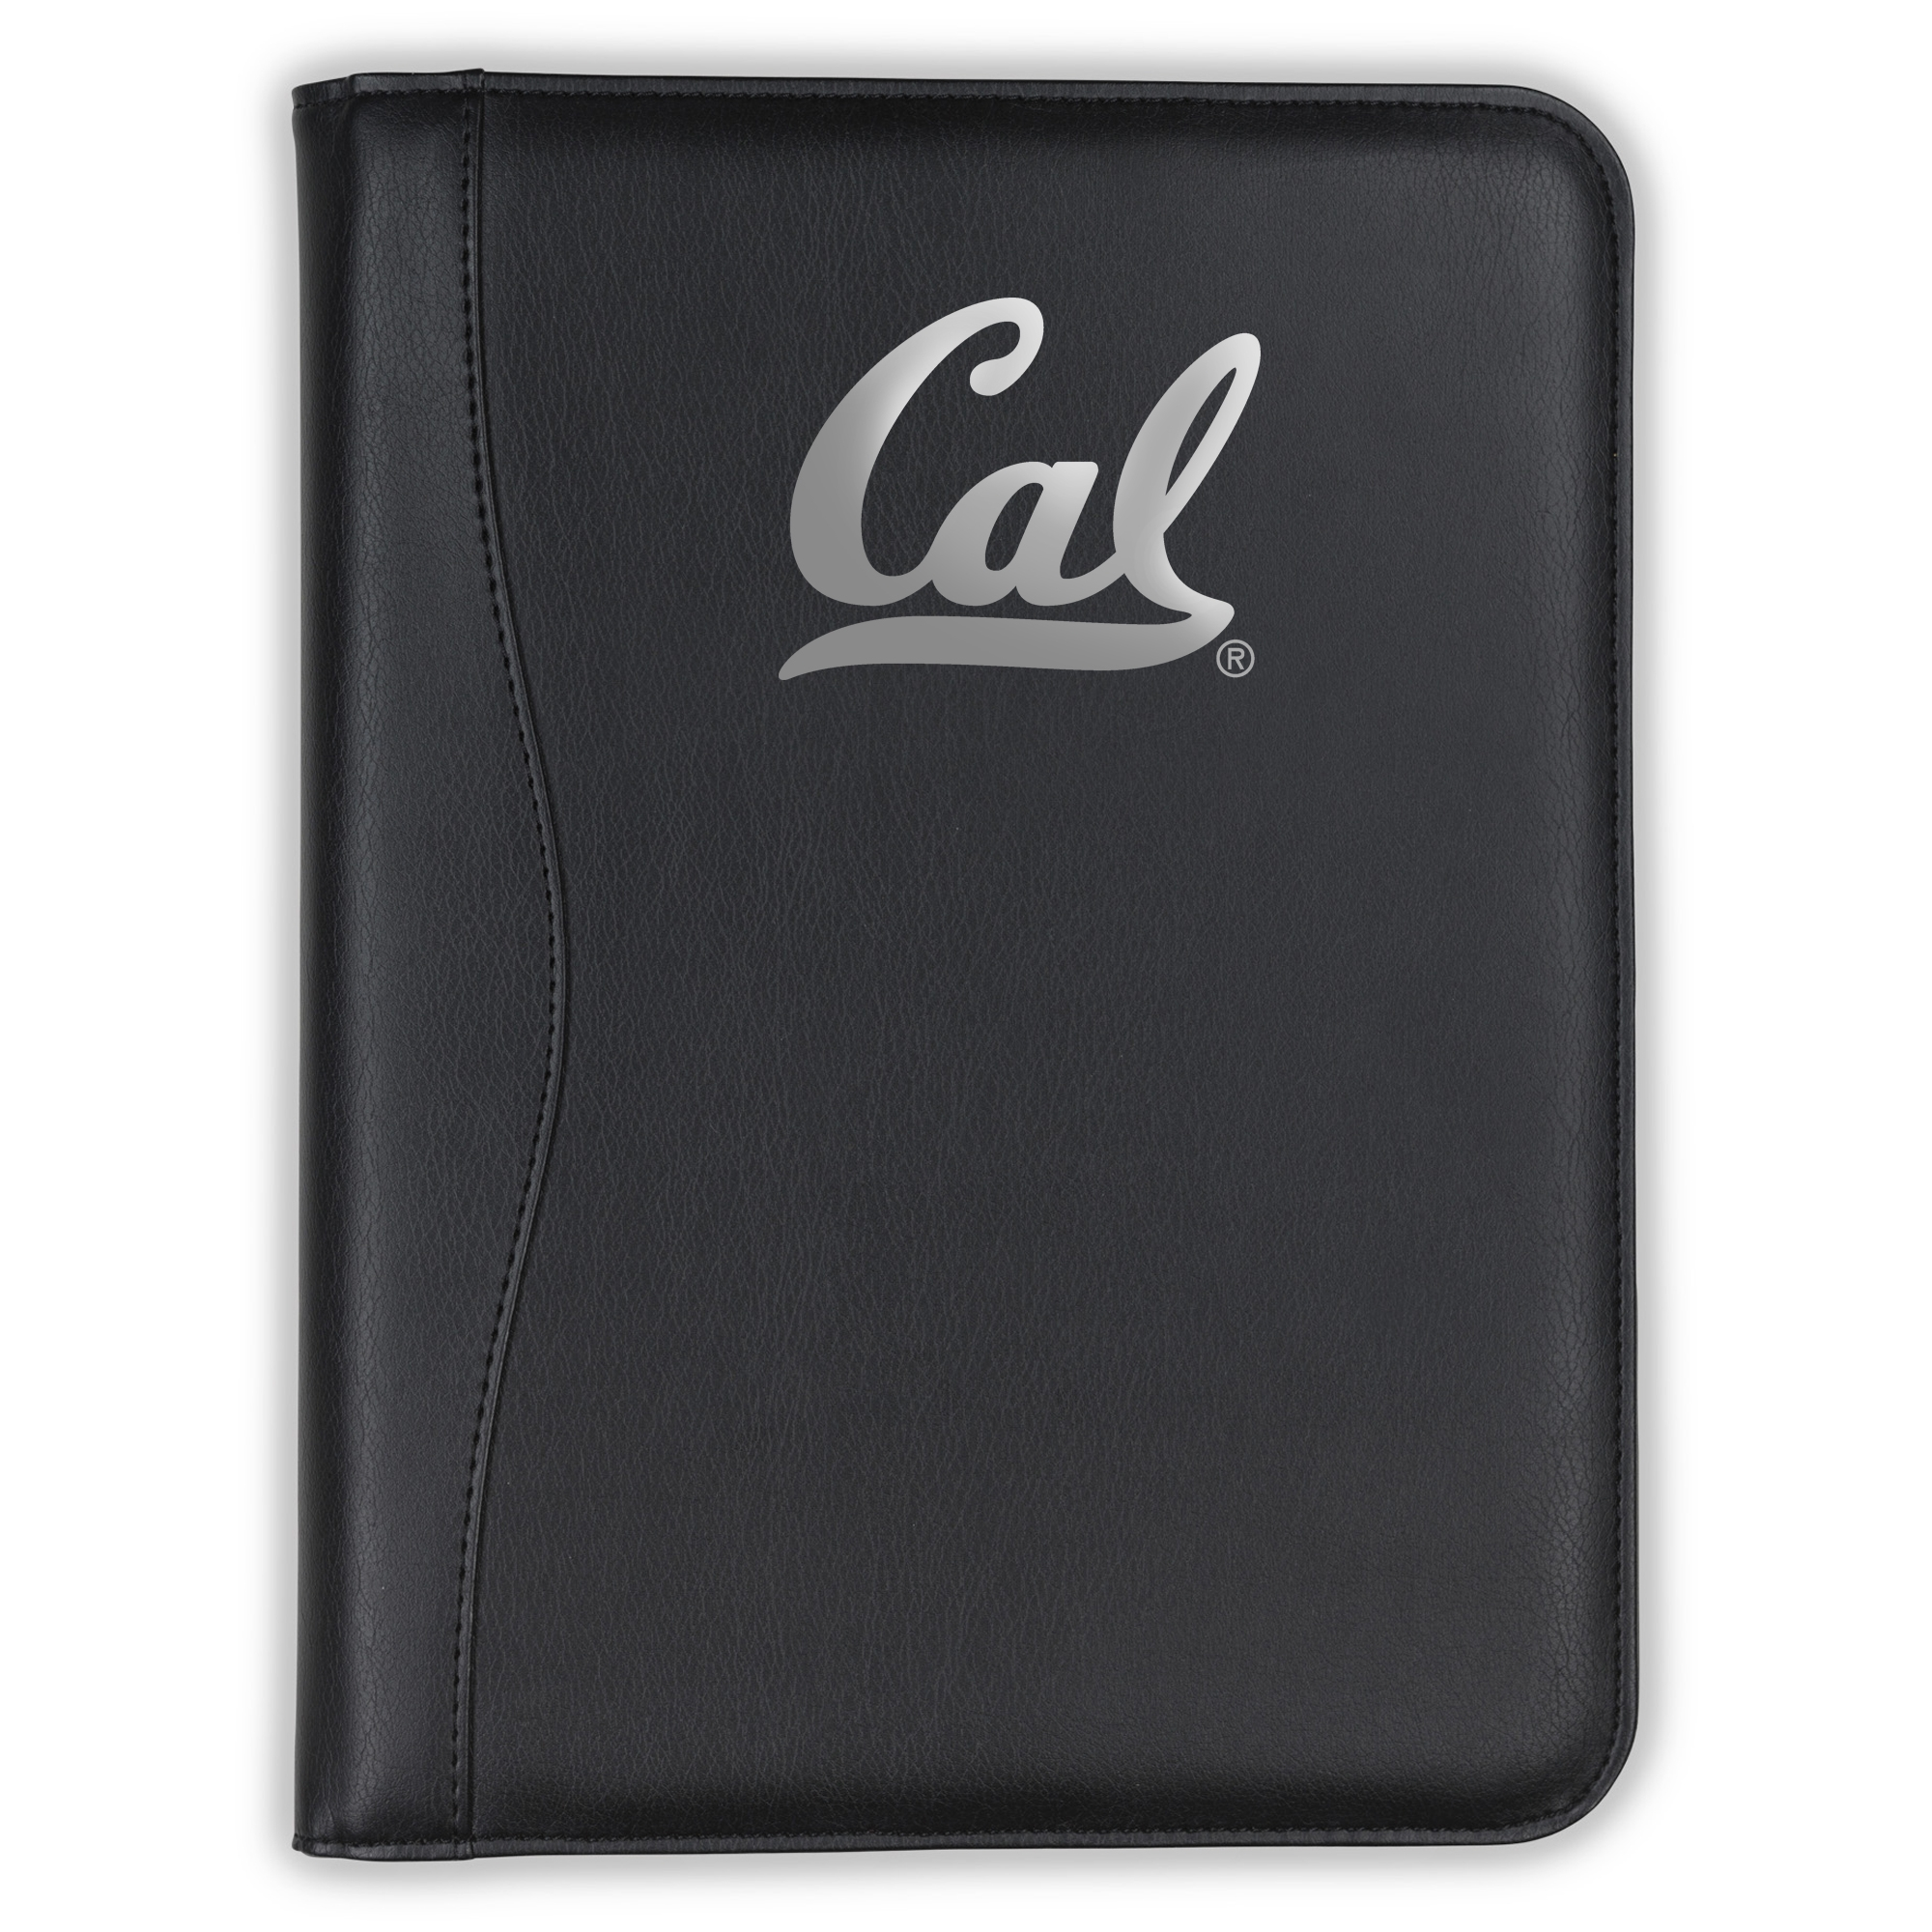 University of California Berkeley Executive Padfolio Cal Logo